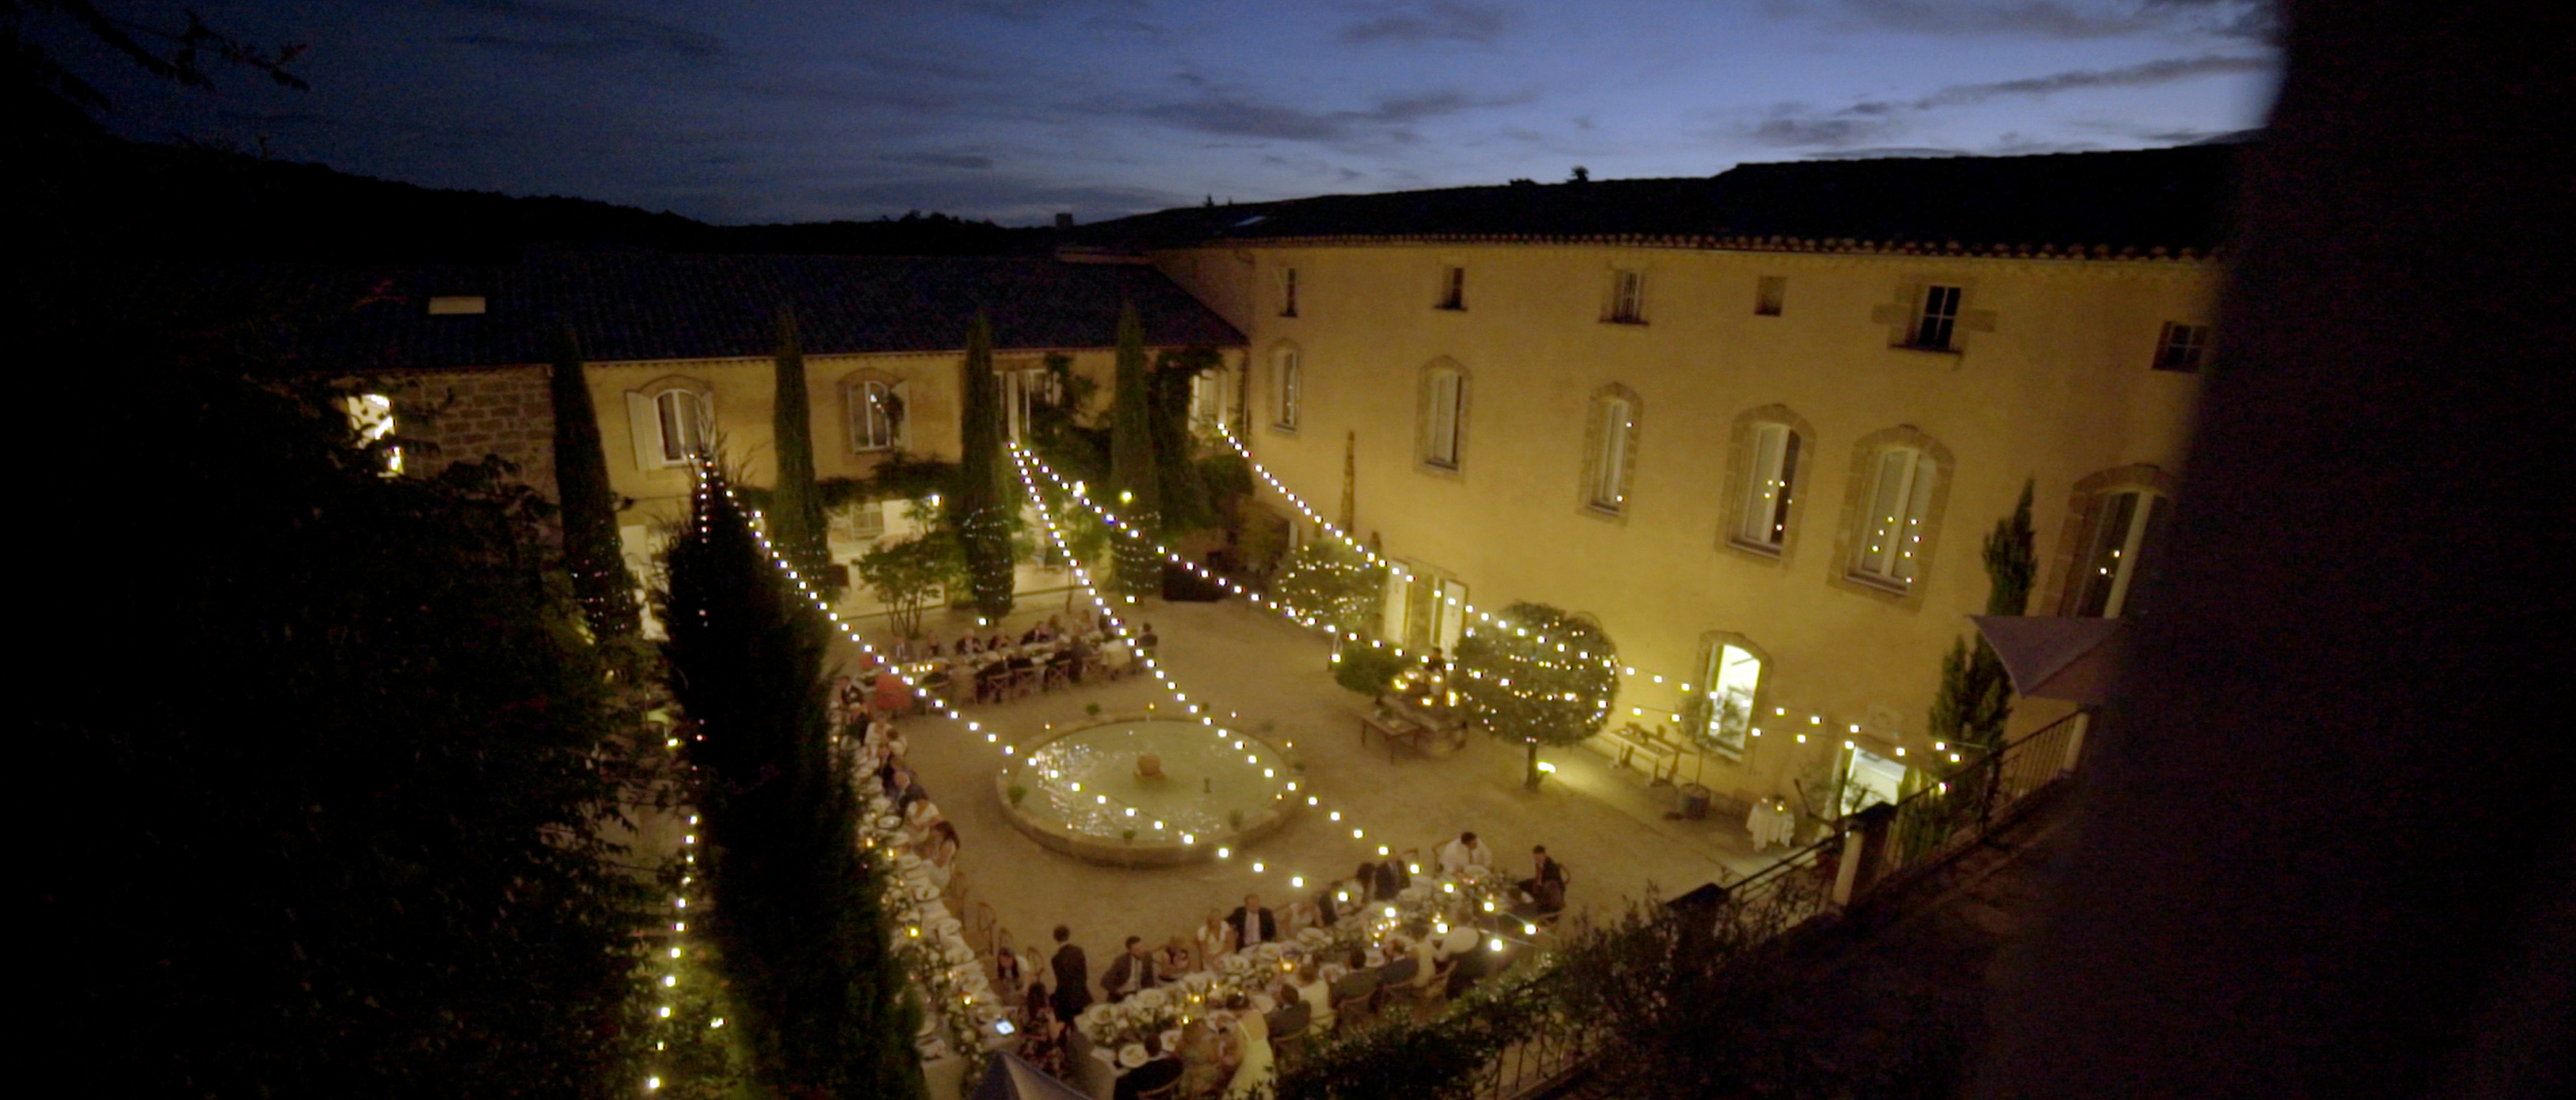 beautiful chateau de massillan wedding south of france wedding inspiration festoon lighting